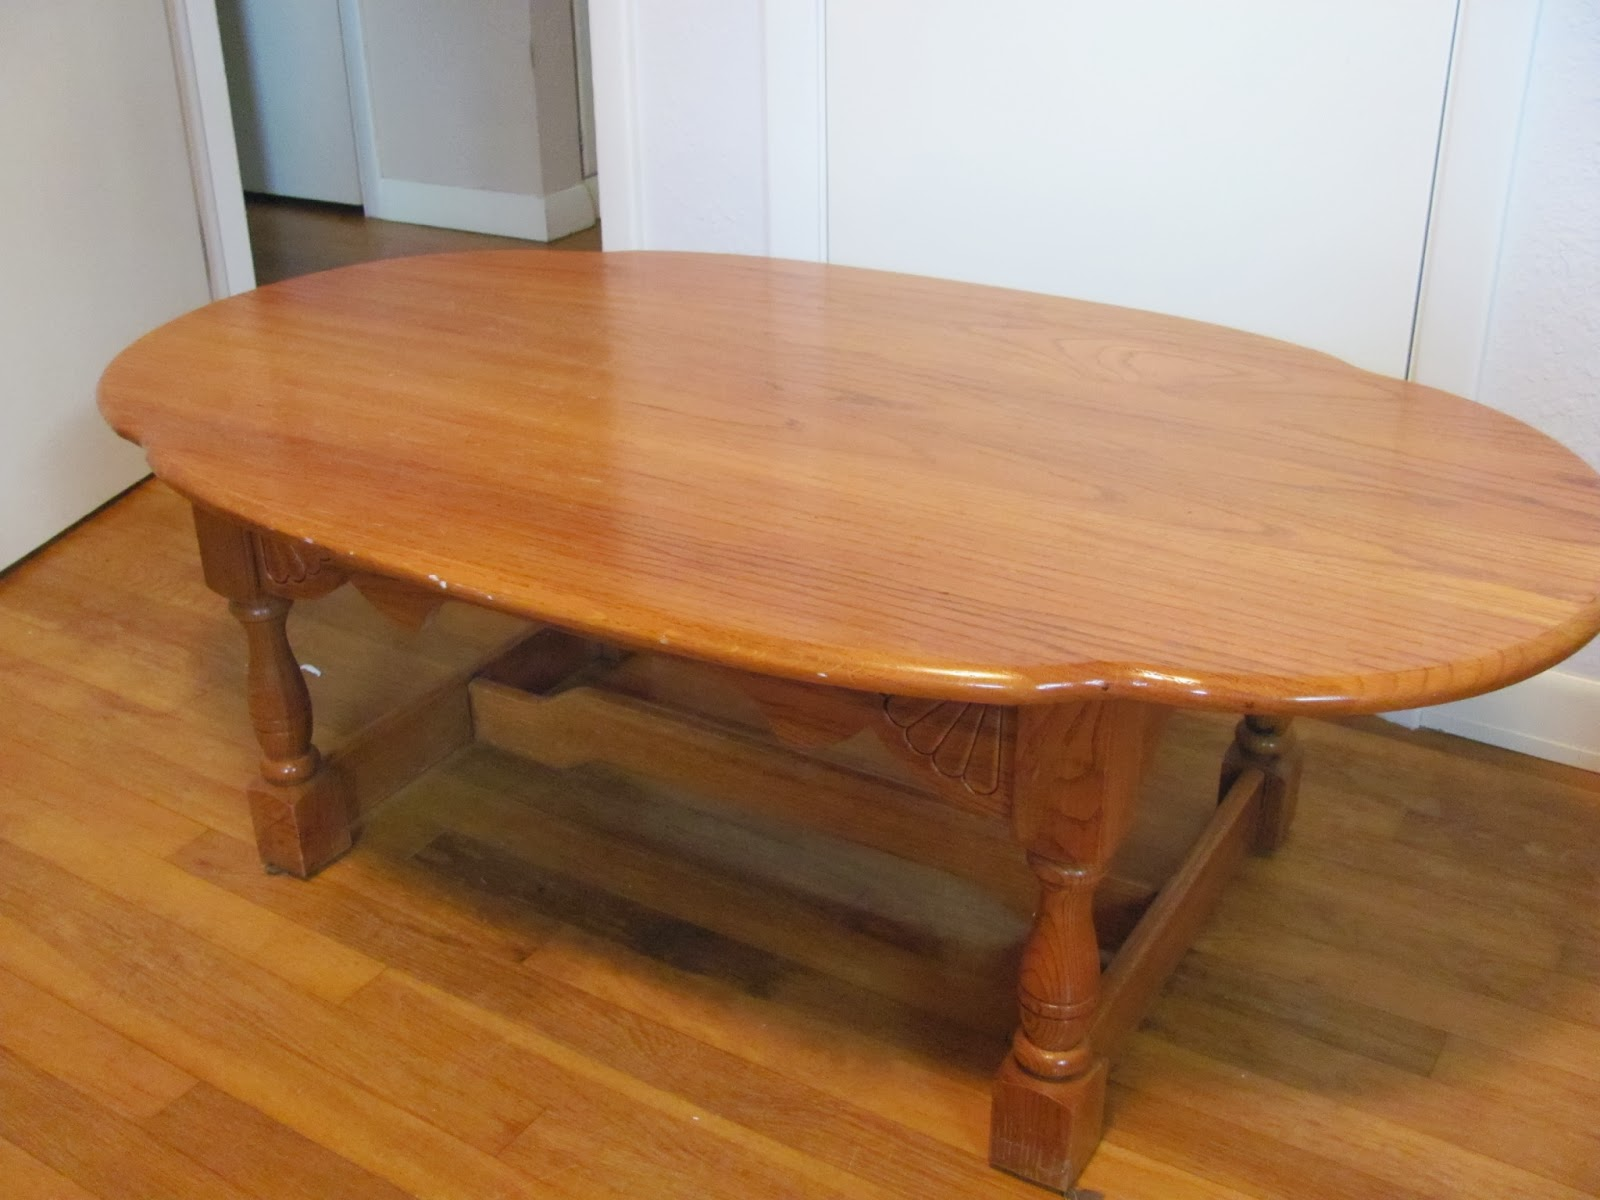 Angle view of the large wooden coffee table before being sold on Craigslist